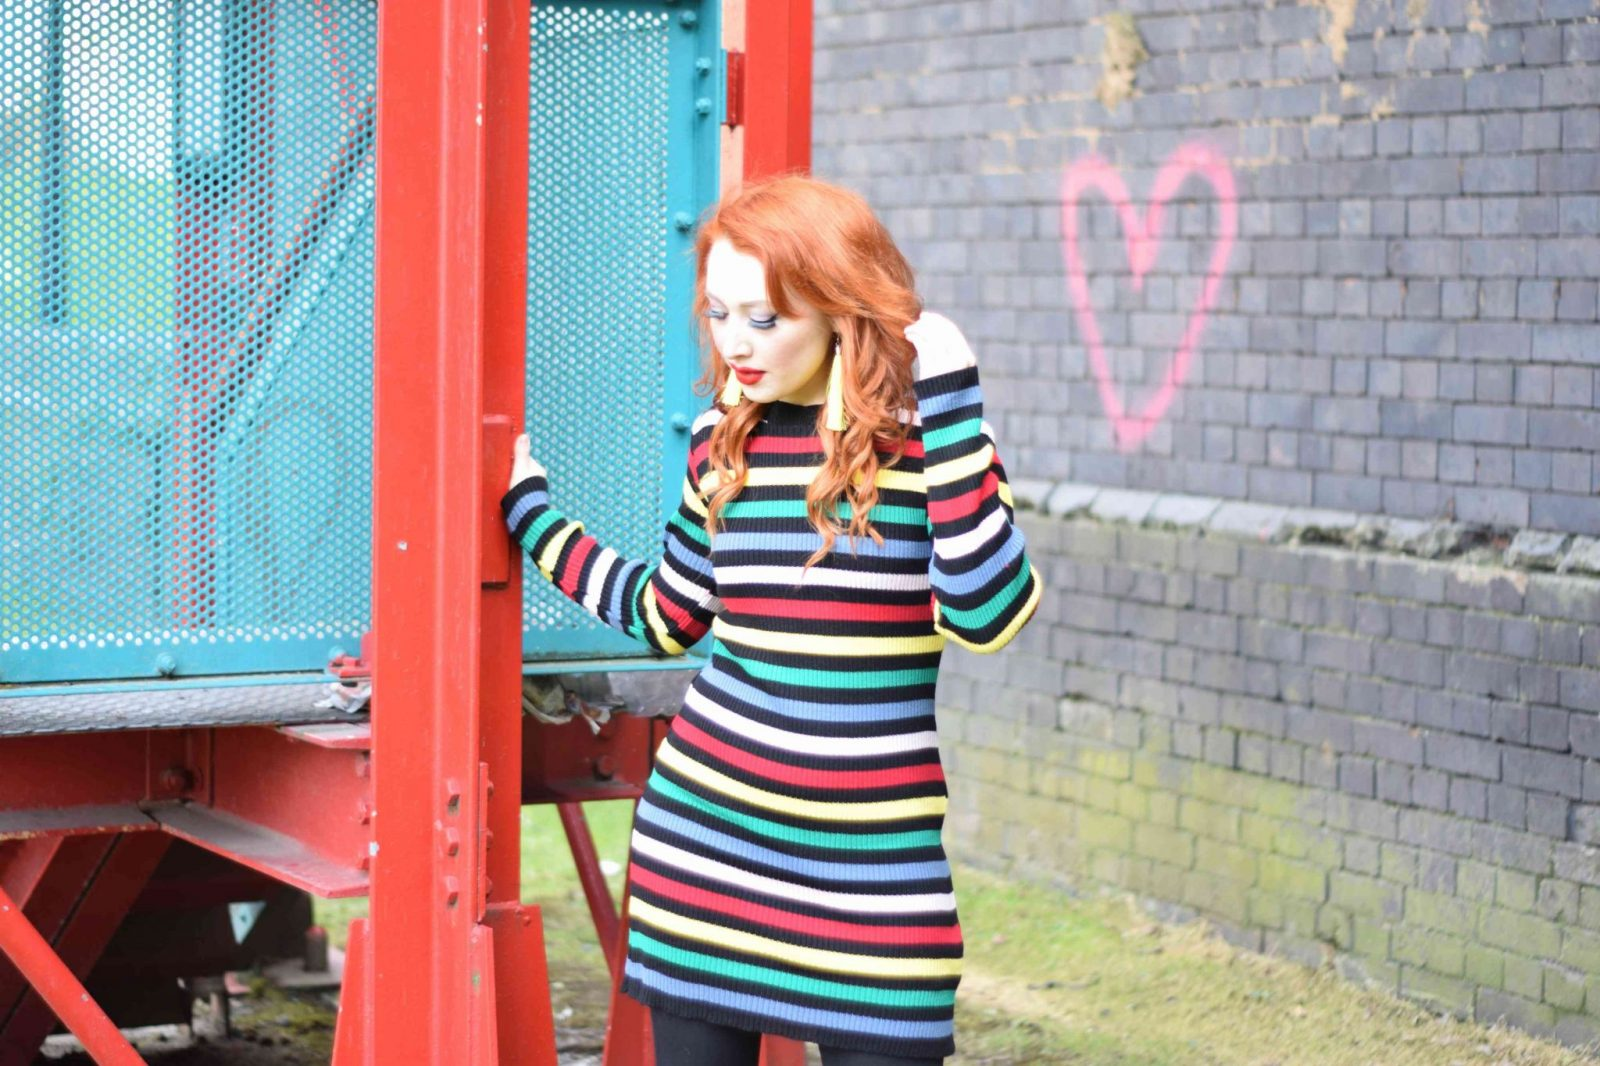 Blogger Twenty-Something City in a bright rainbow stripe dress